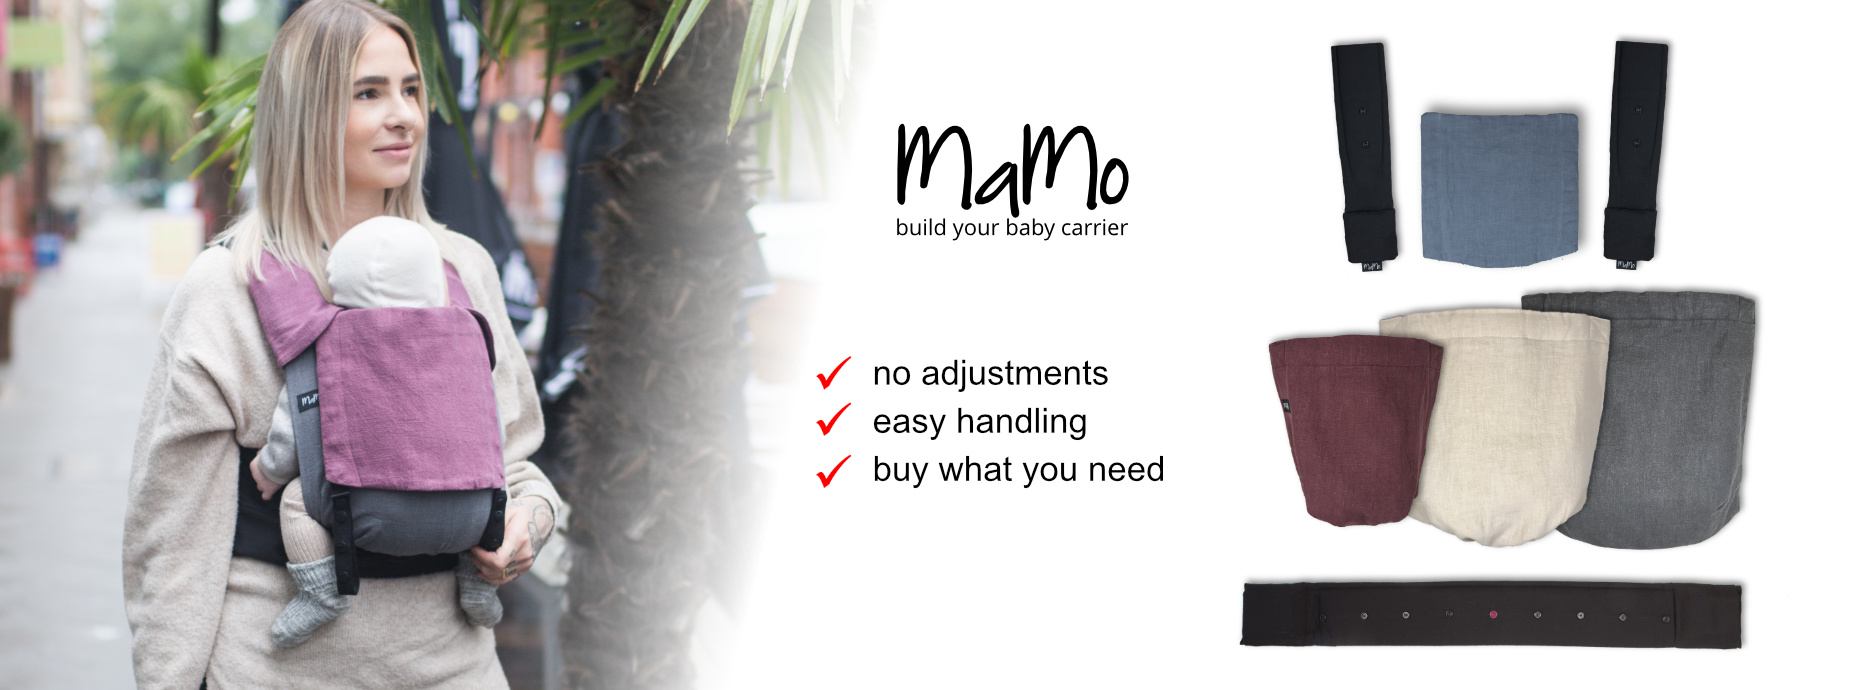 MaMo baby carrier